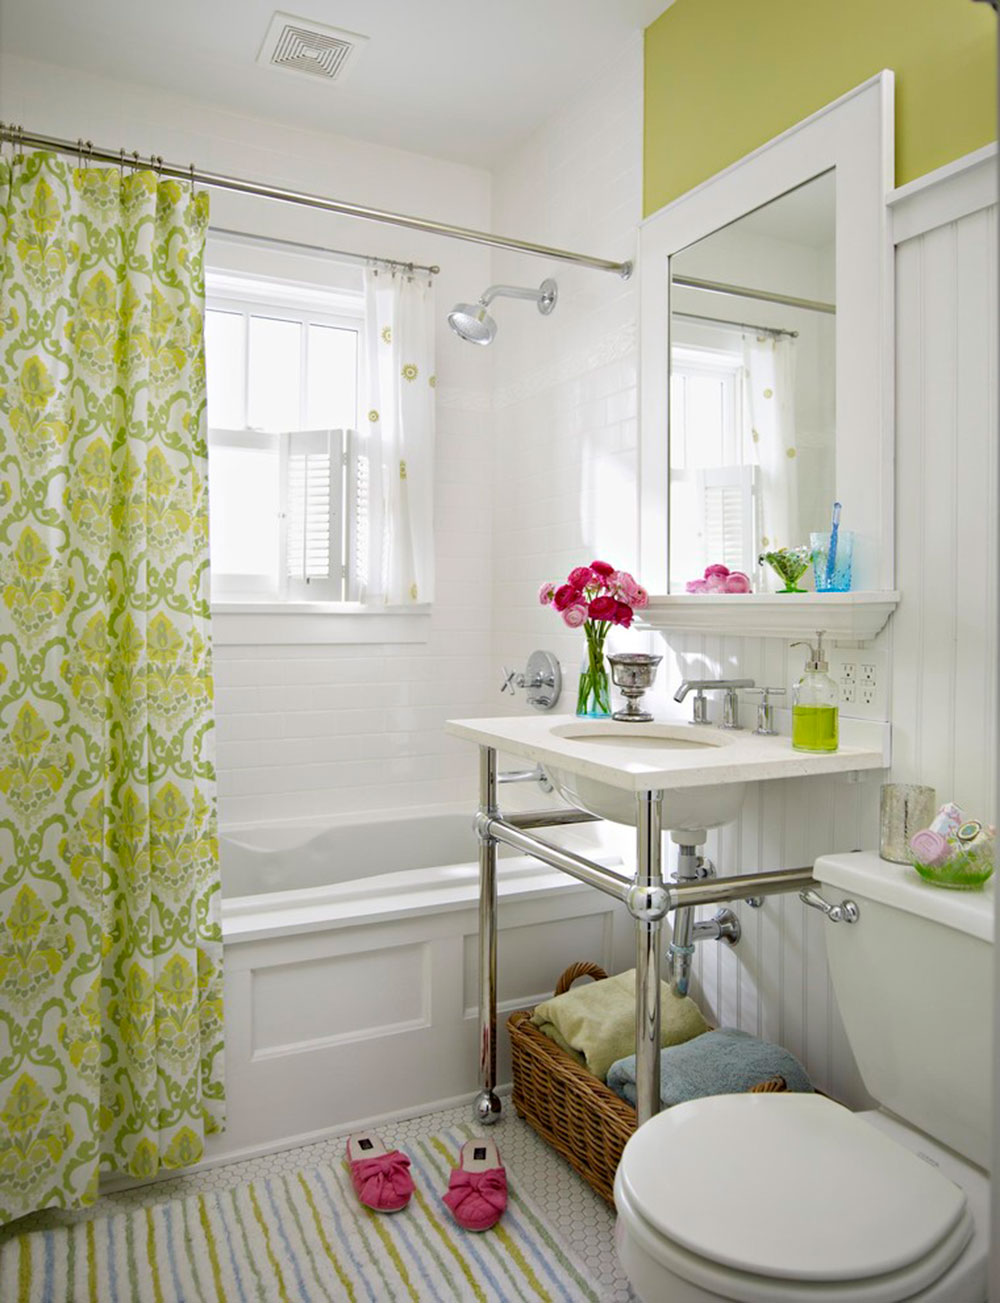 Enhance your bathroom look with trendy shower curtains6 trendy shower curtains for your bathroom